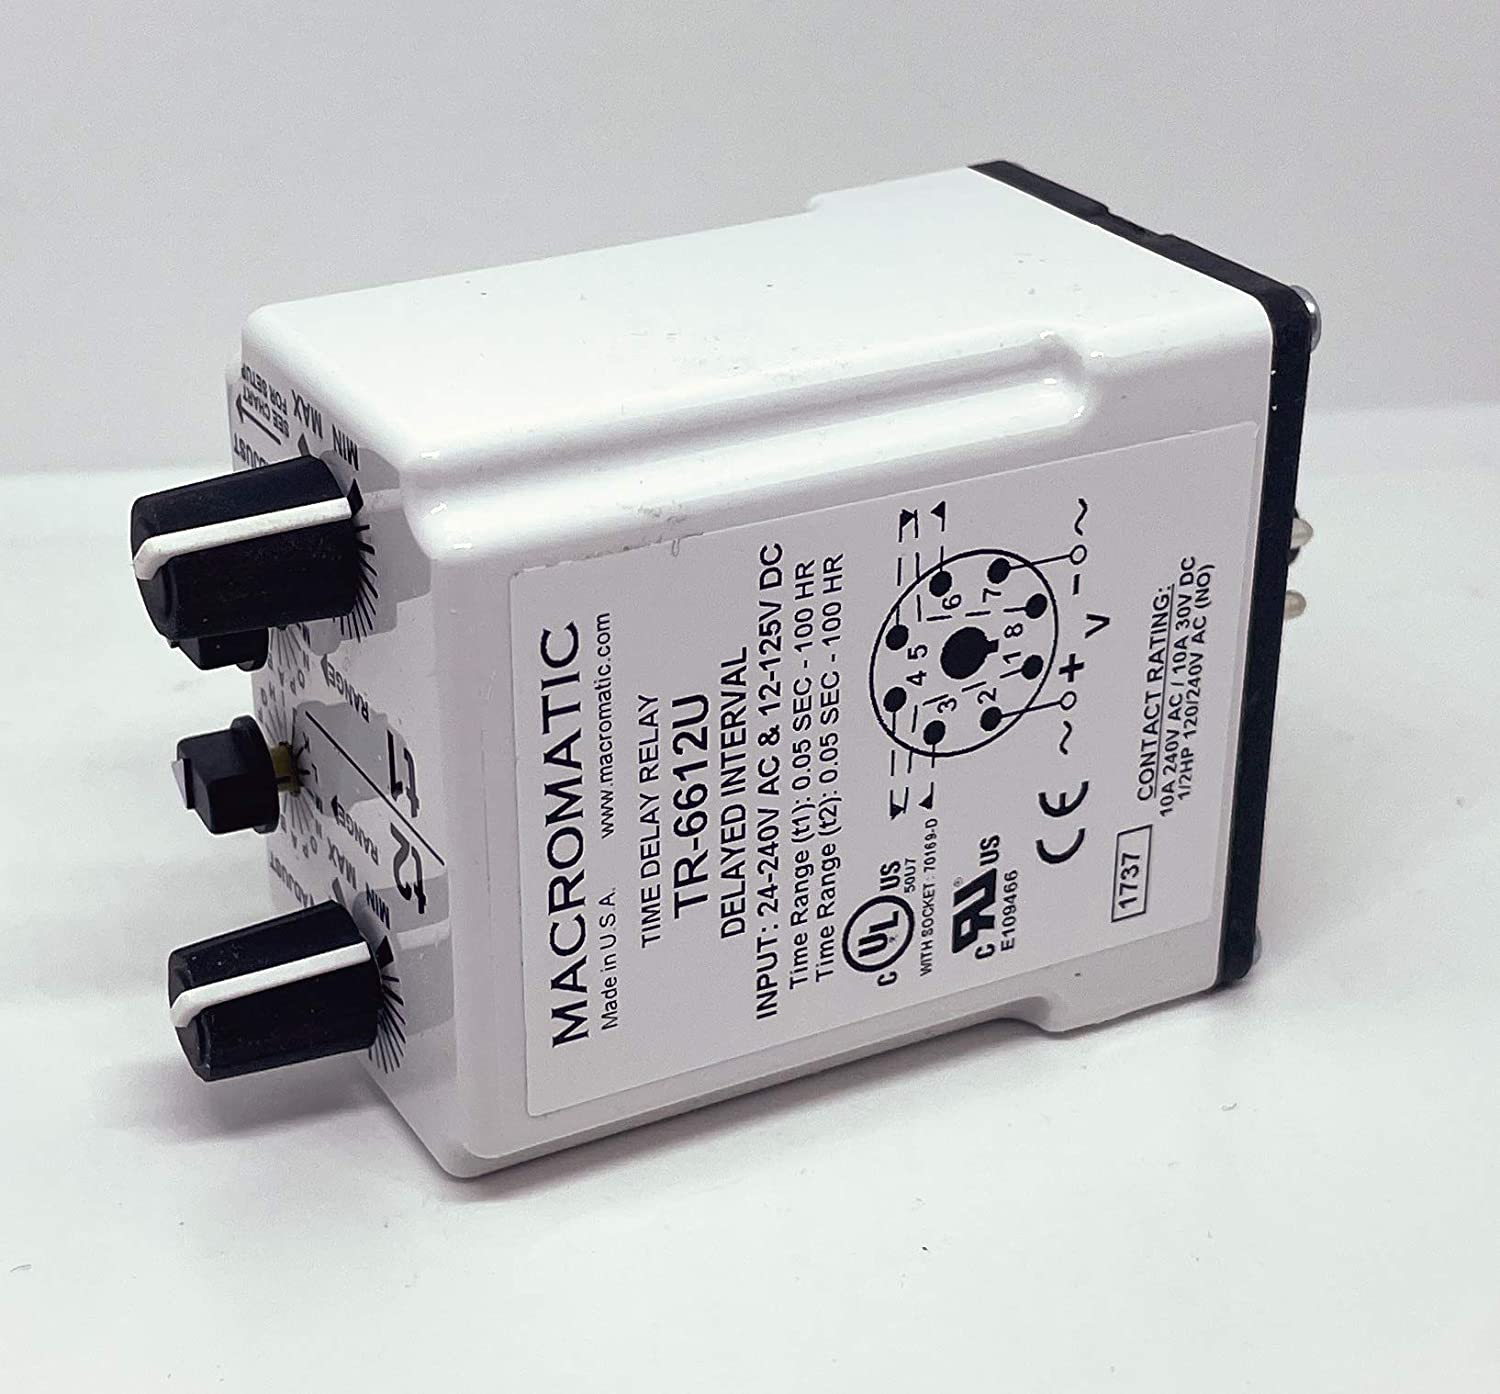 Time Delay Charlotte Mall Max 85% OFF Relay 30 V 0.05 s Ranger 100 h TR-6 TIME Series